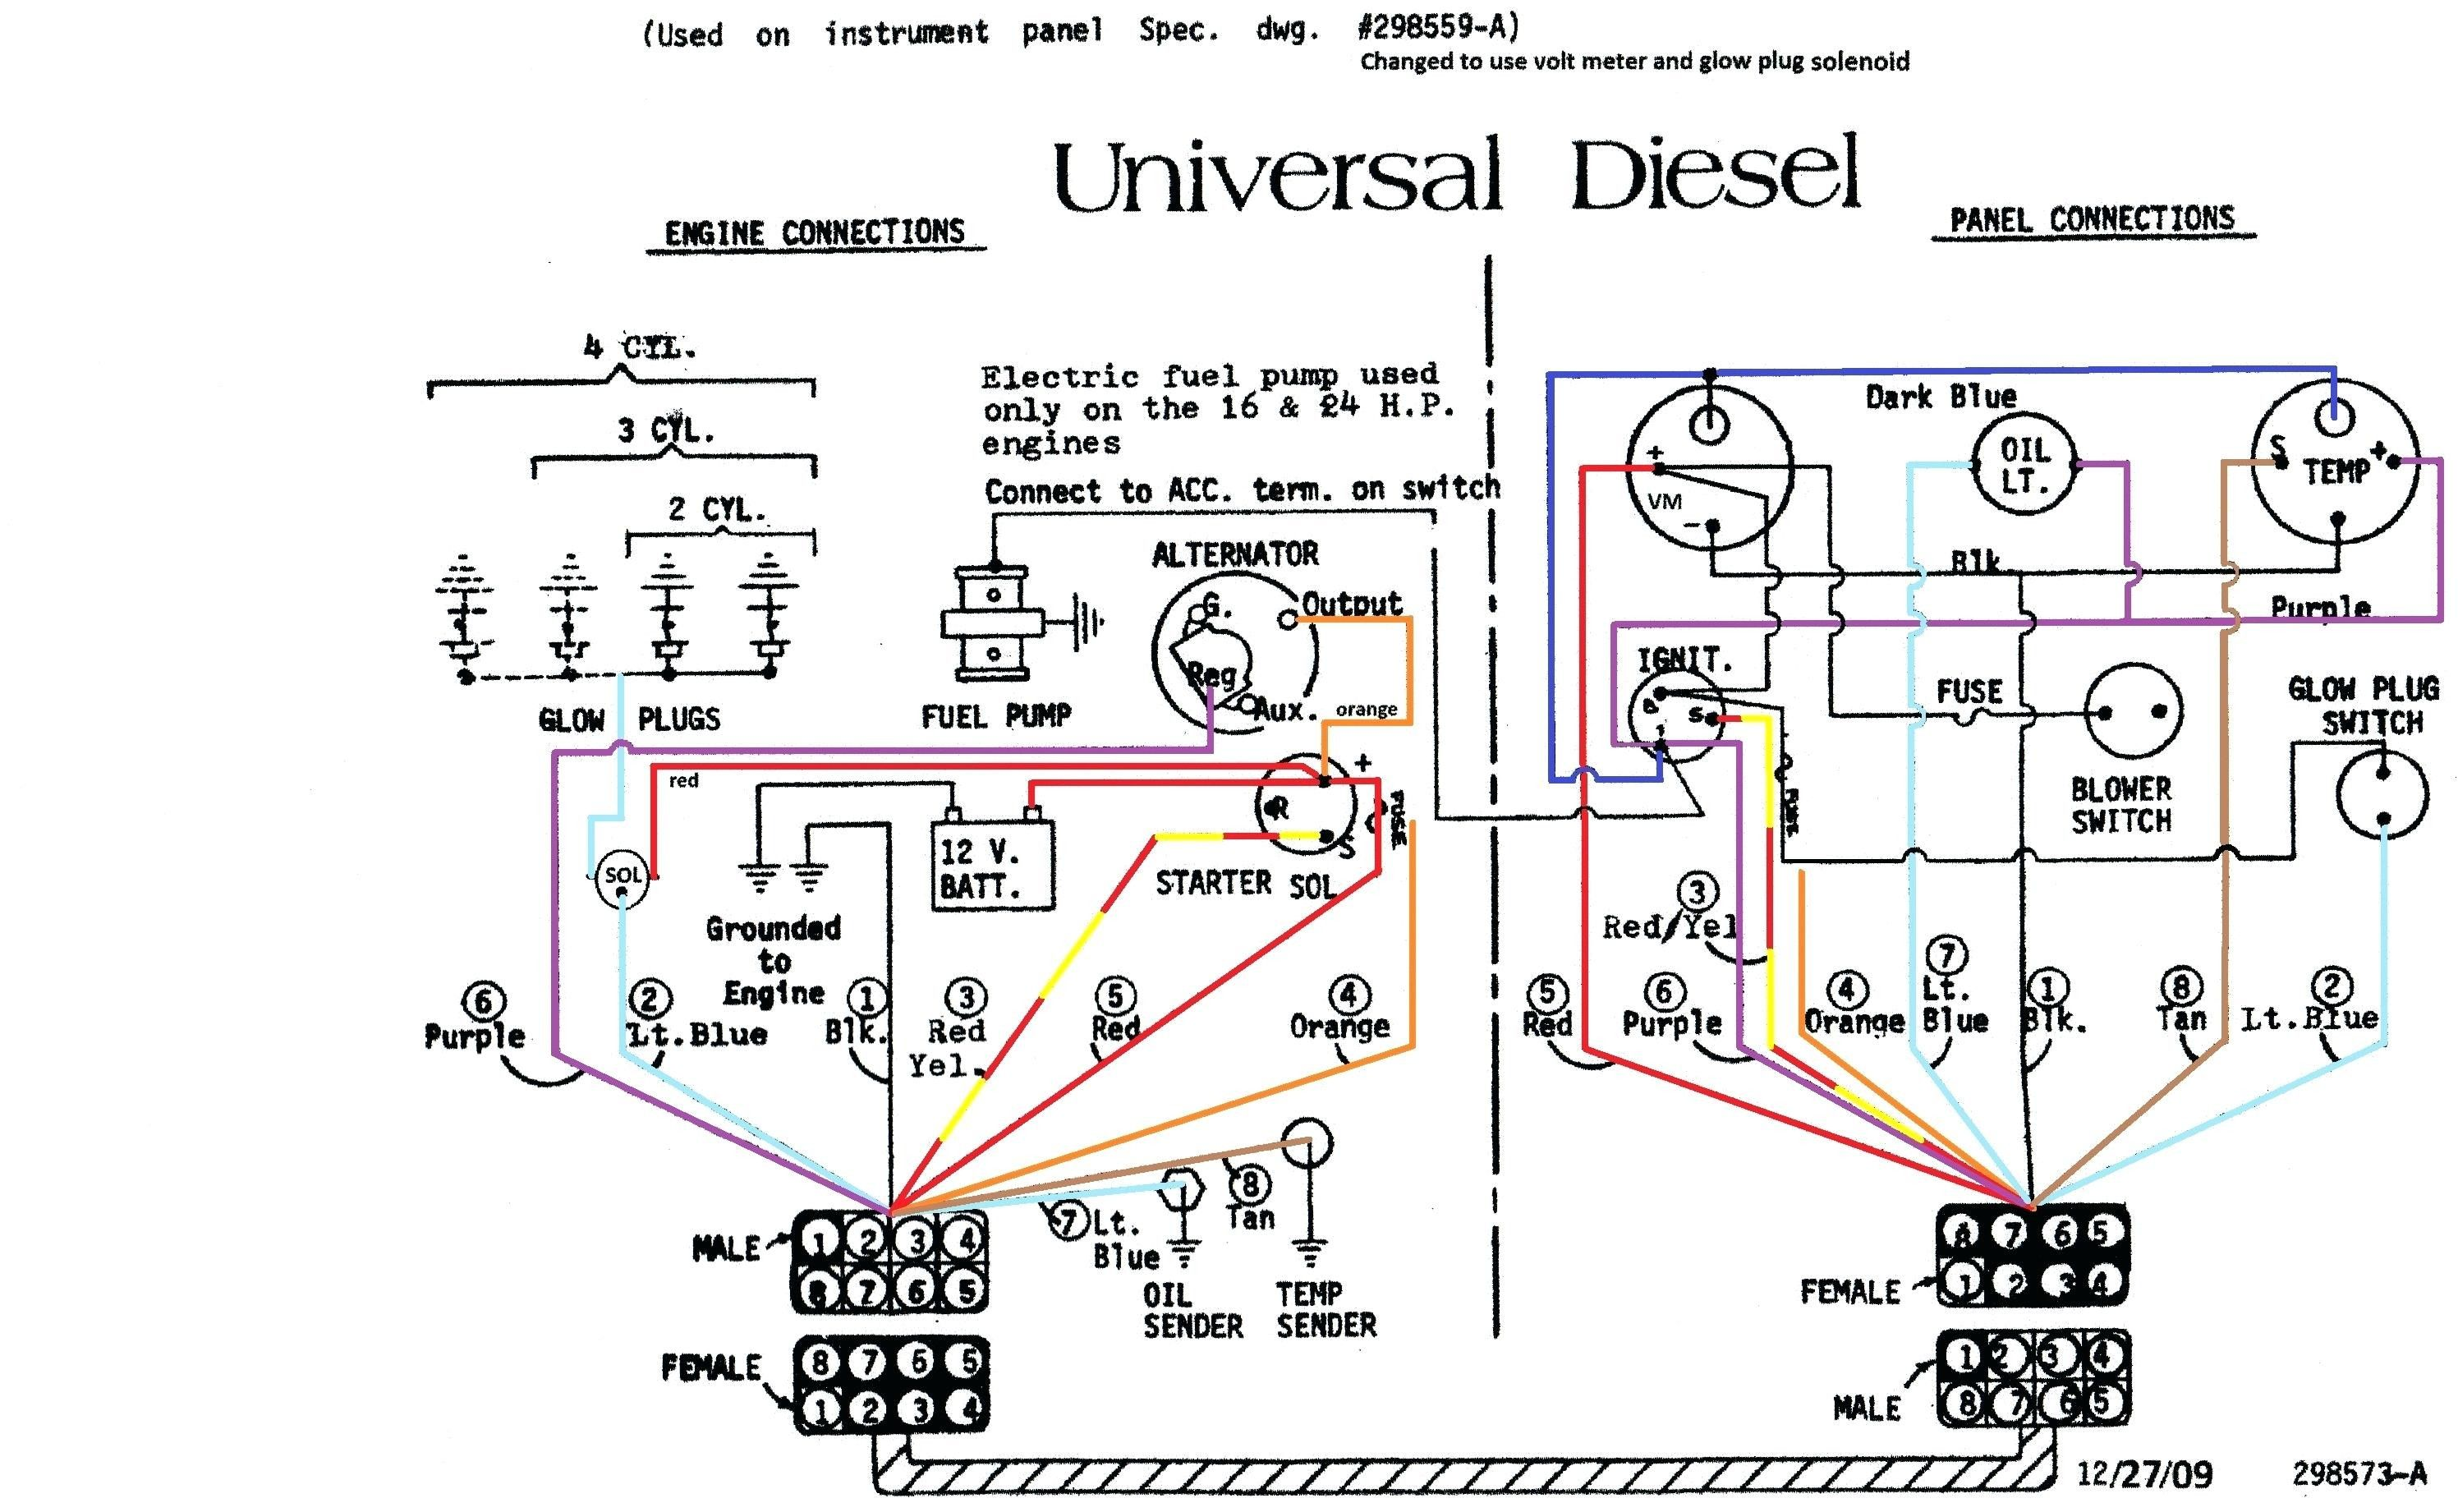 New Wiring Diagram Program Diagram Wiringdiagram Diagramming Diagramm Visuals Visualisation Graphical Alternator Diesel Engine Trailer Wiring Diagram